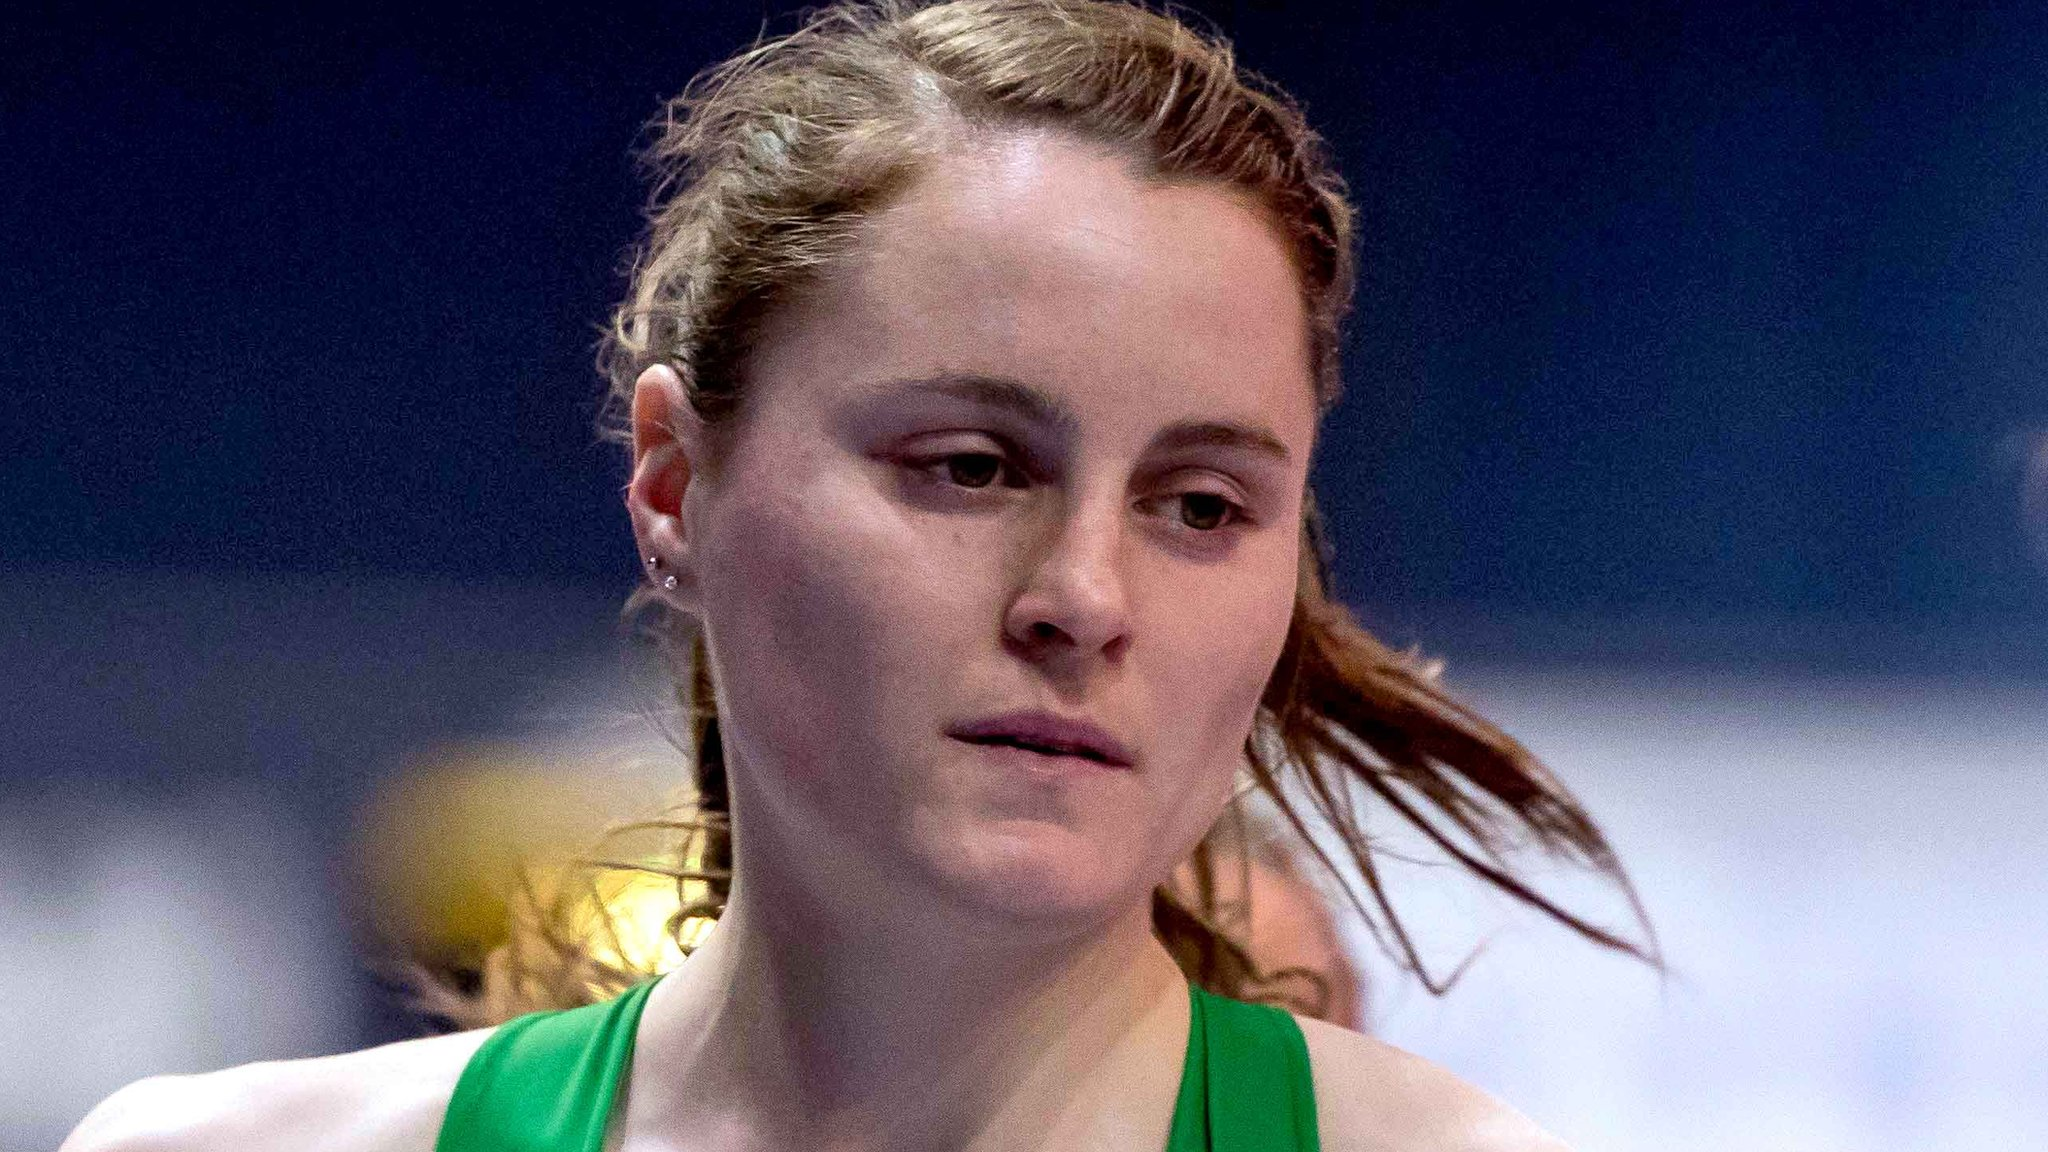 Truth or Not? Ciara Mageean: County Down runner wins 1500m race in Barcelona